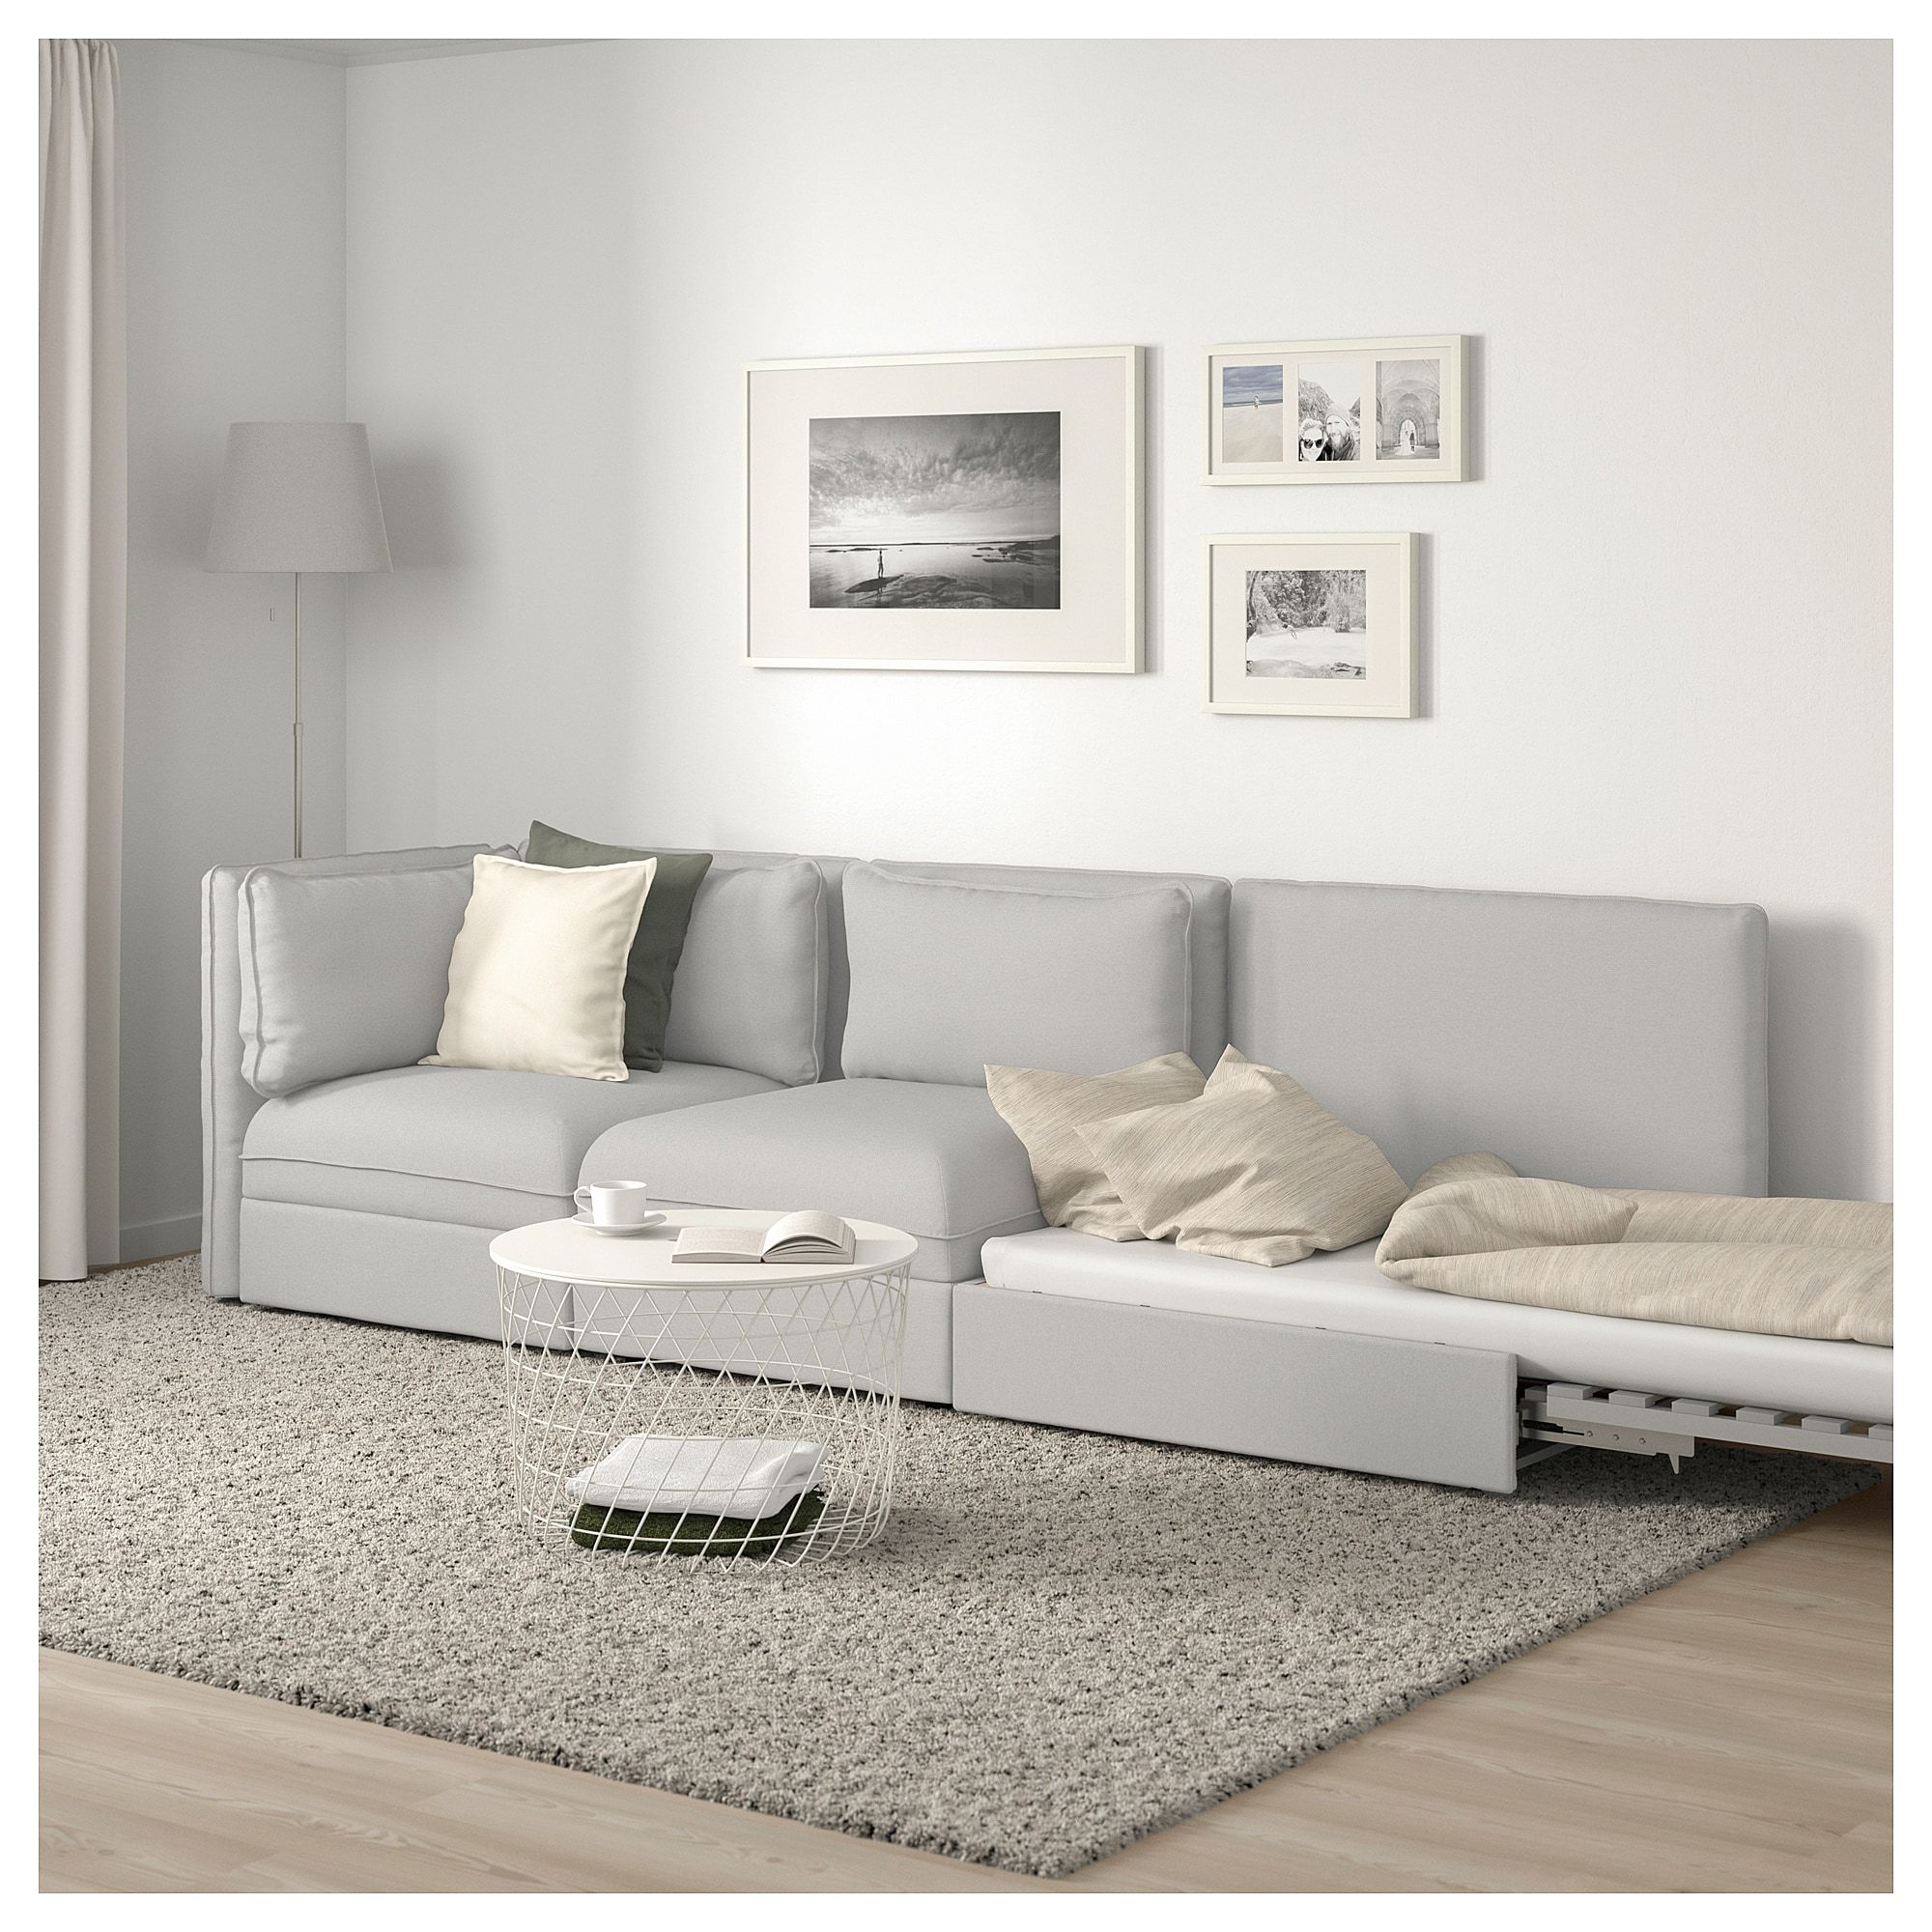 Vallentuna 3 Seat Modular Sleeper Sofa With Open End Orrsta Light Gray Ikea Modular Corner Sofa Sofa Design Corner Sofa Design